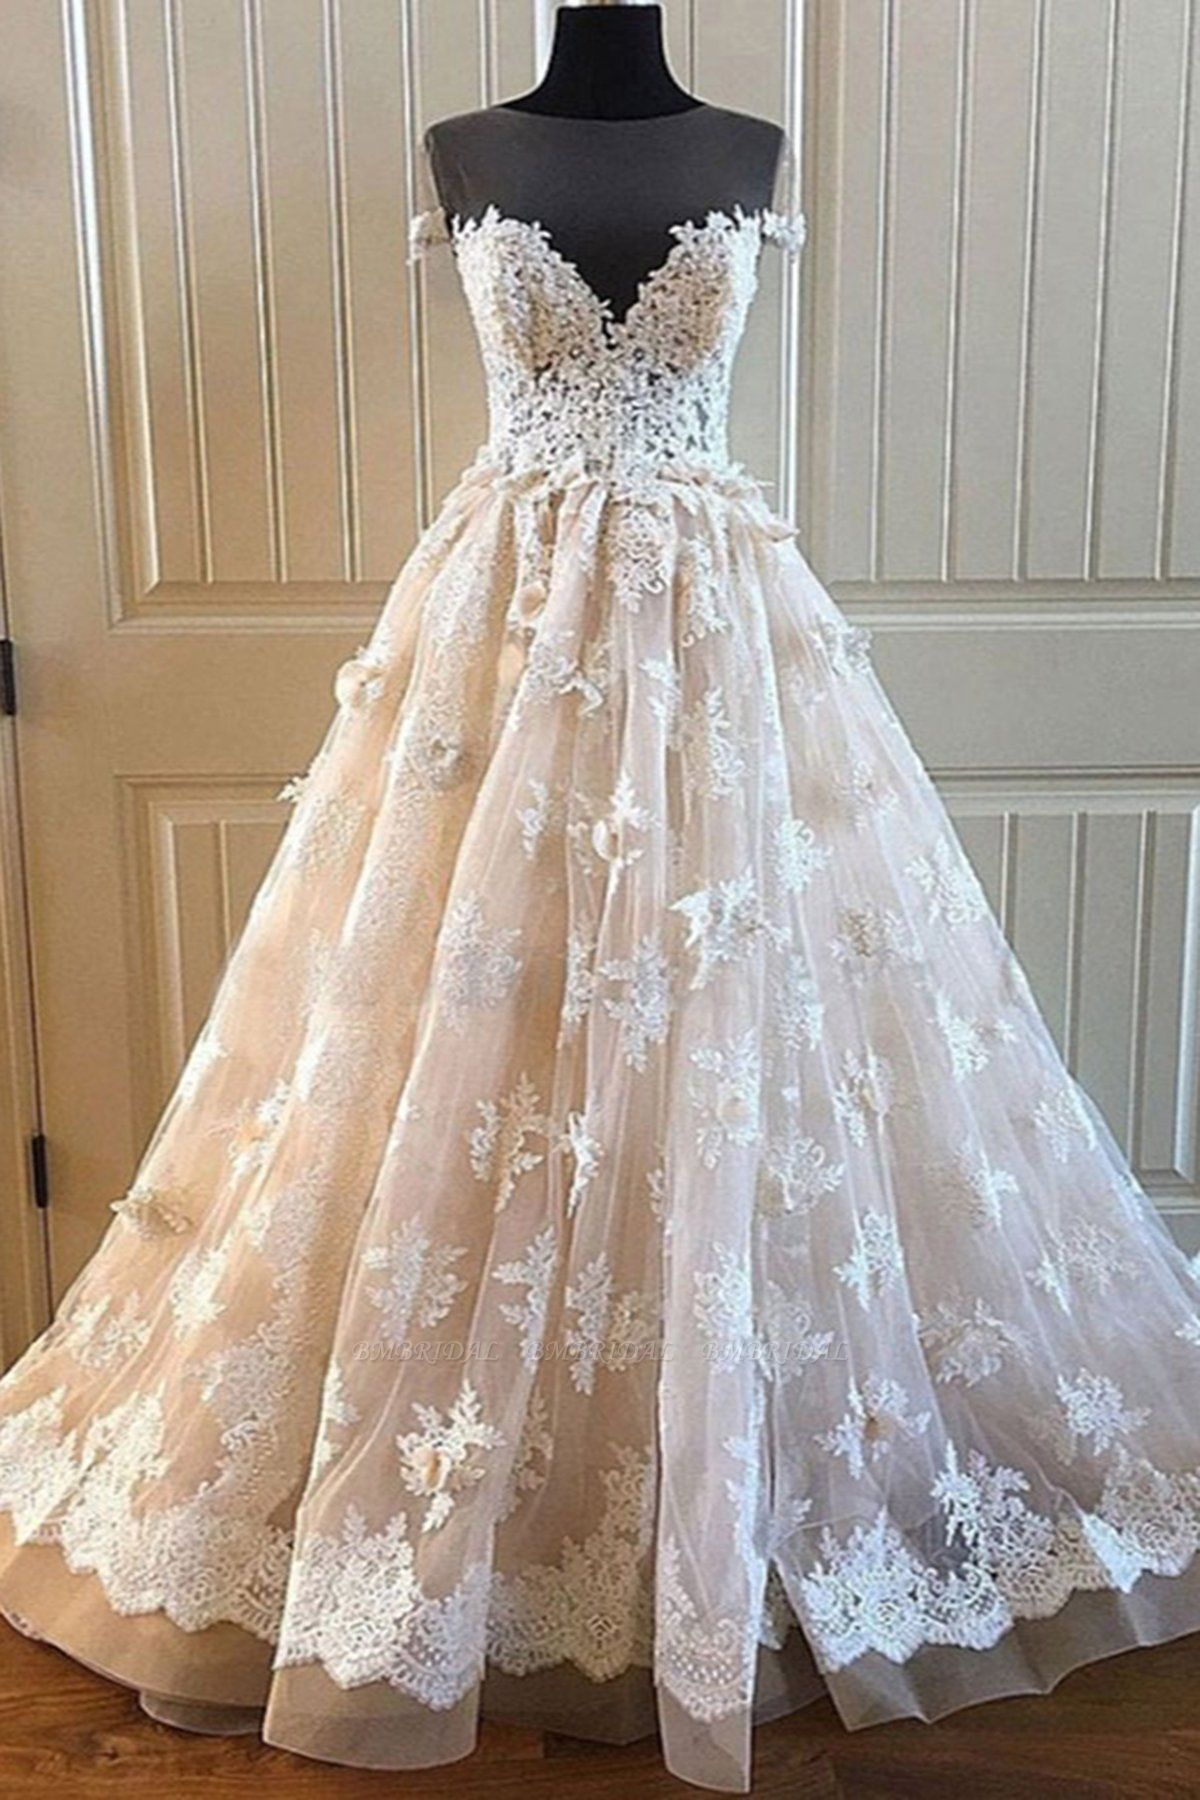 BMbridal Elegant Creamy Lace Sweetheart Long Wedding Dress A Line Appliques Bridal Gowns On Sale